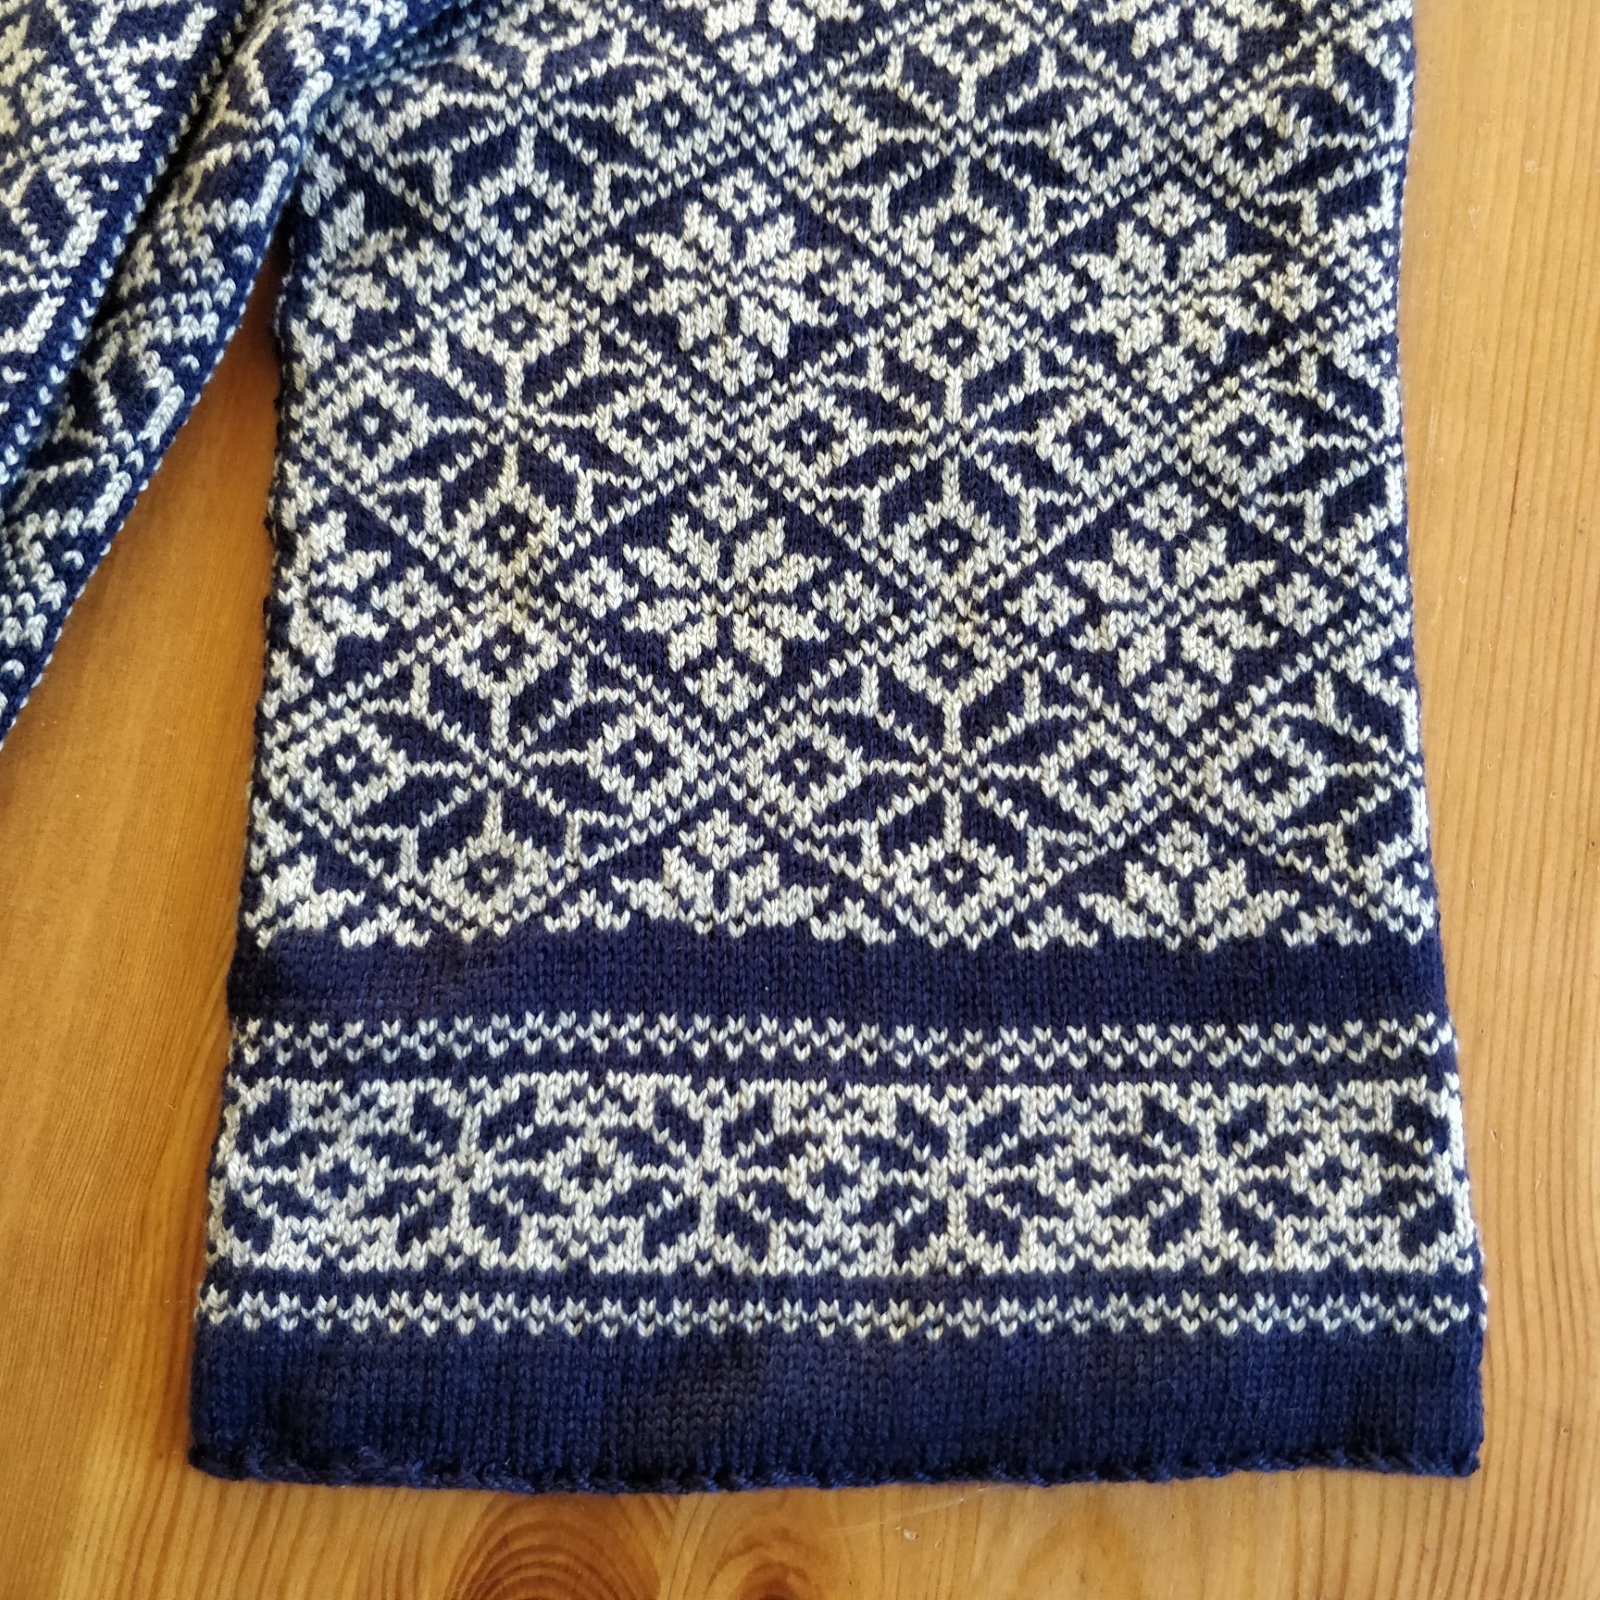 The end of the scarf, with solid blue lines separating a small snowflake border from the main body snowflake pattern.